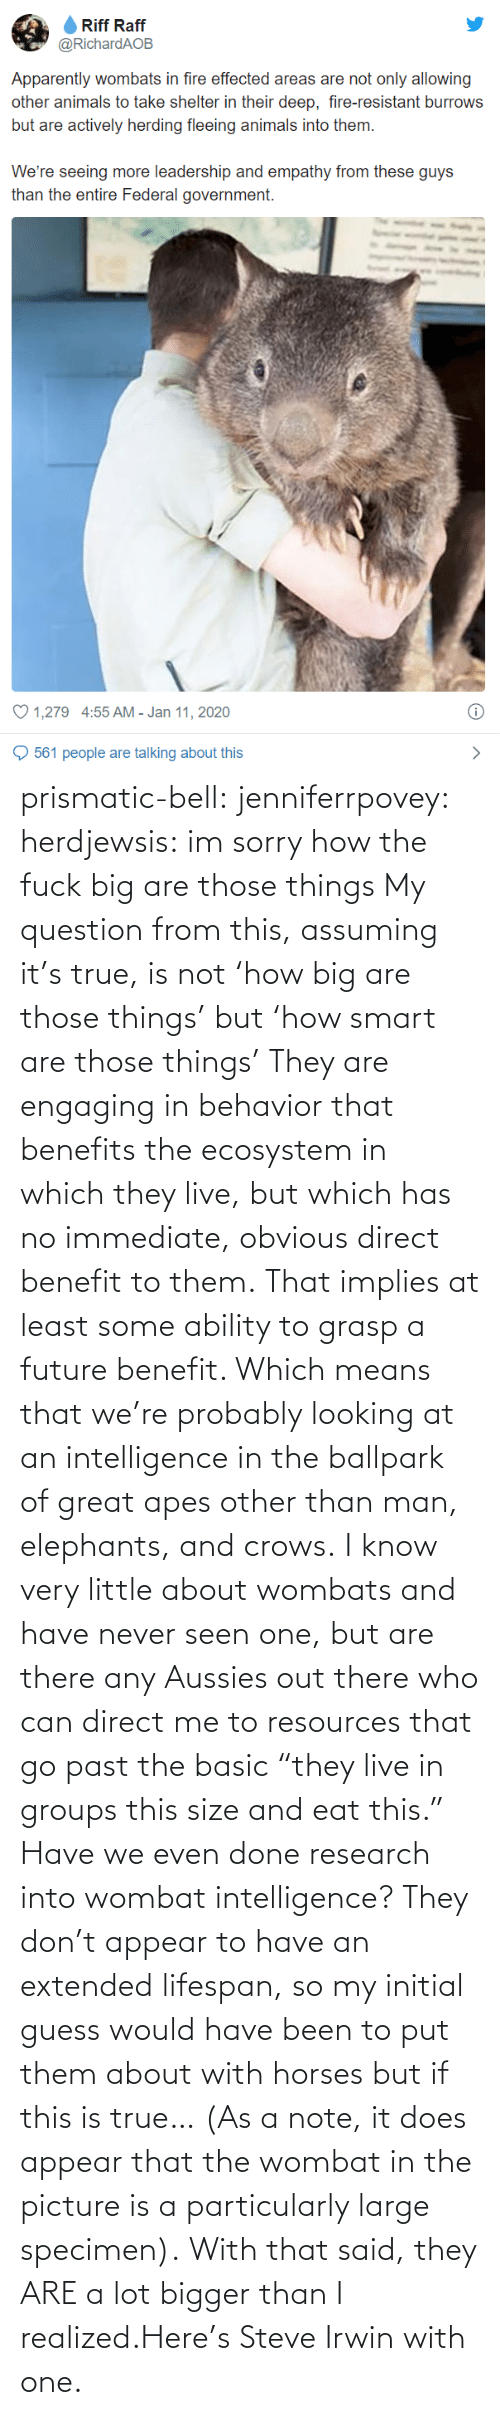 """Future, Horses, and Sorry: prismatic-bell:  jenniferrpovey: herdjewsis: im sorry how the fuck big are those things My question from this, assuming it's true, is not'how big are those things' but'how smart are those things' They are engaging in behavior that benefits the ecosystem in which they live, but which has no immediate, obvious direct benefit to them. That implies at least some ability to grasp a future benefit. Which means that we're probably looking at an intelligence in the ballpark of great apes other than man, elephants, and crows. I know very little about wombats and have never seen one, but are there any Aussies out there who can direct me to resources that go past the basic""""they live in groups this size and eat this."""" Have we even doneresearch into wombat intelligence? They don't appear to have an extended lifespan, so my initial guess would have been to put them about with horses but if this is true… (As a note, it does appear that the wombat in the picture is a particularly large specimen).  With that said, they ARE a lot bigger than I realized.Here's Steve Irwin with one."""